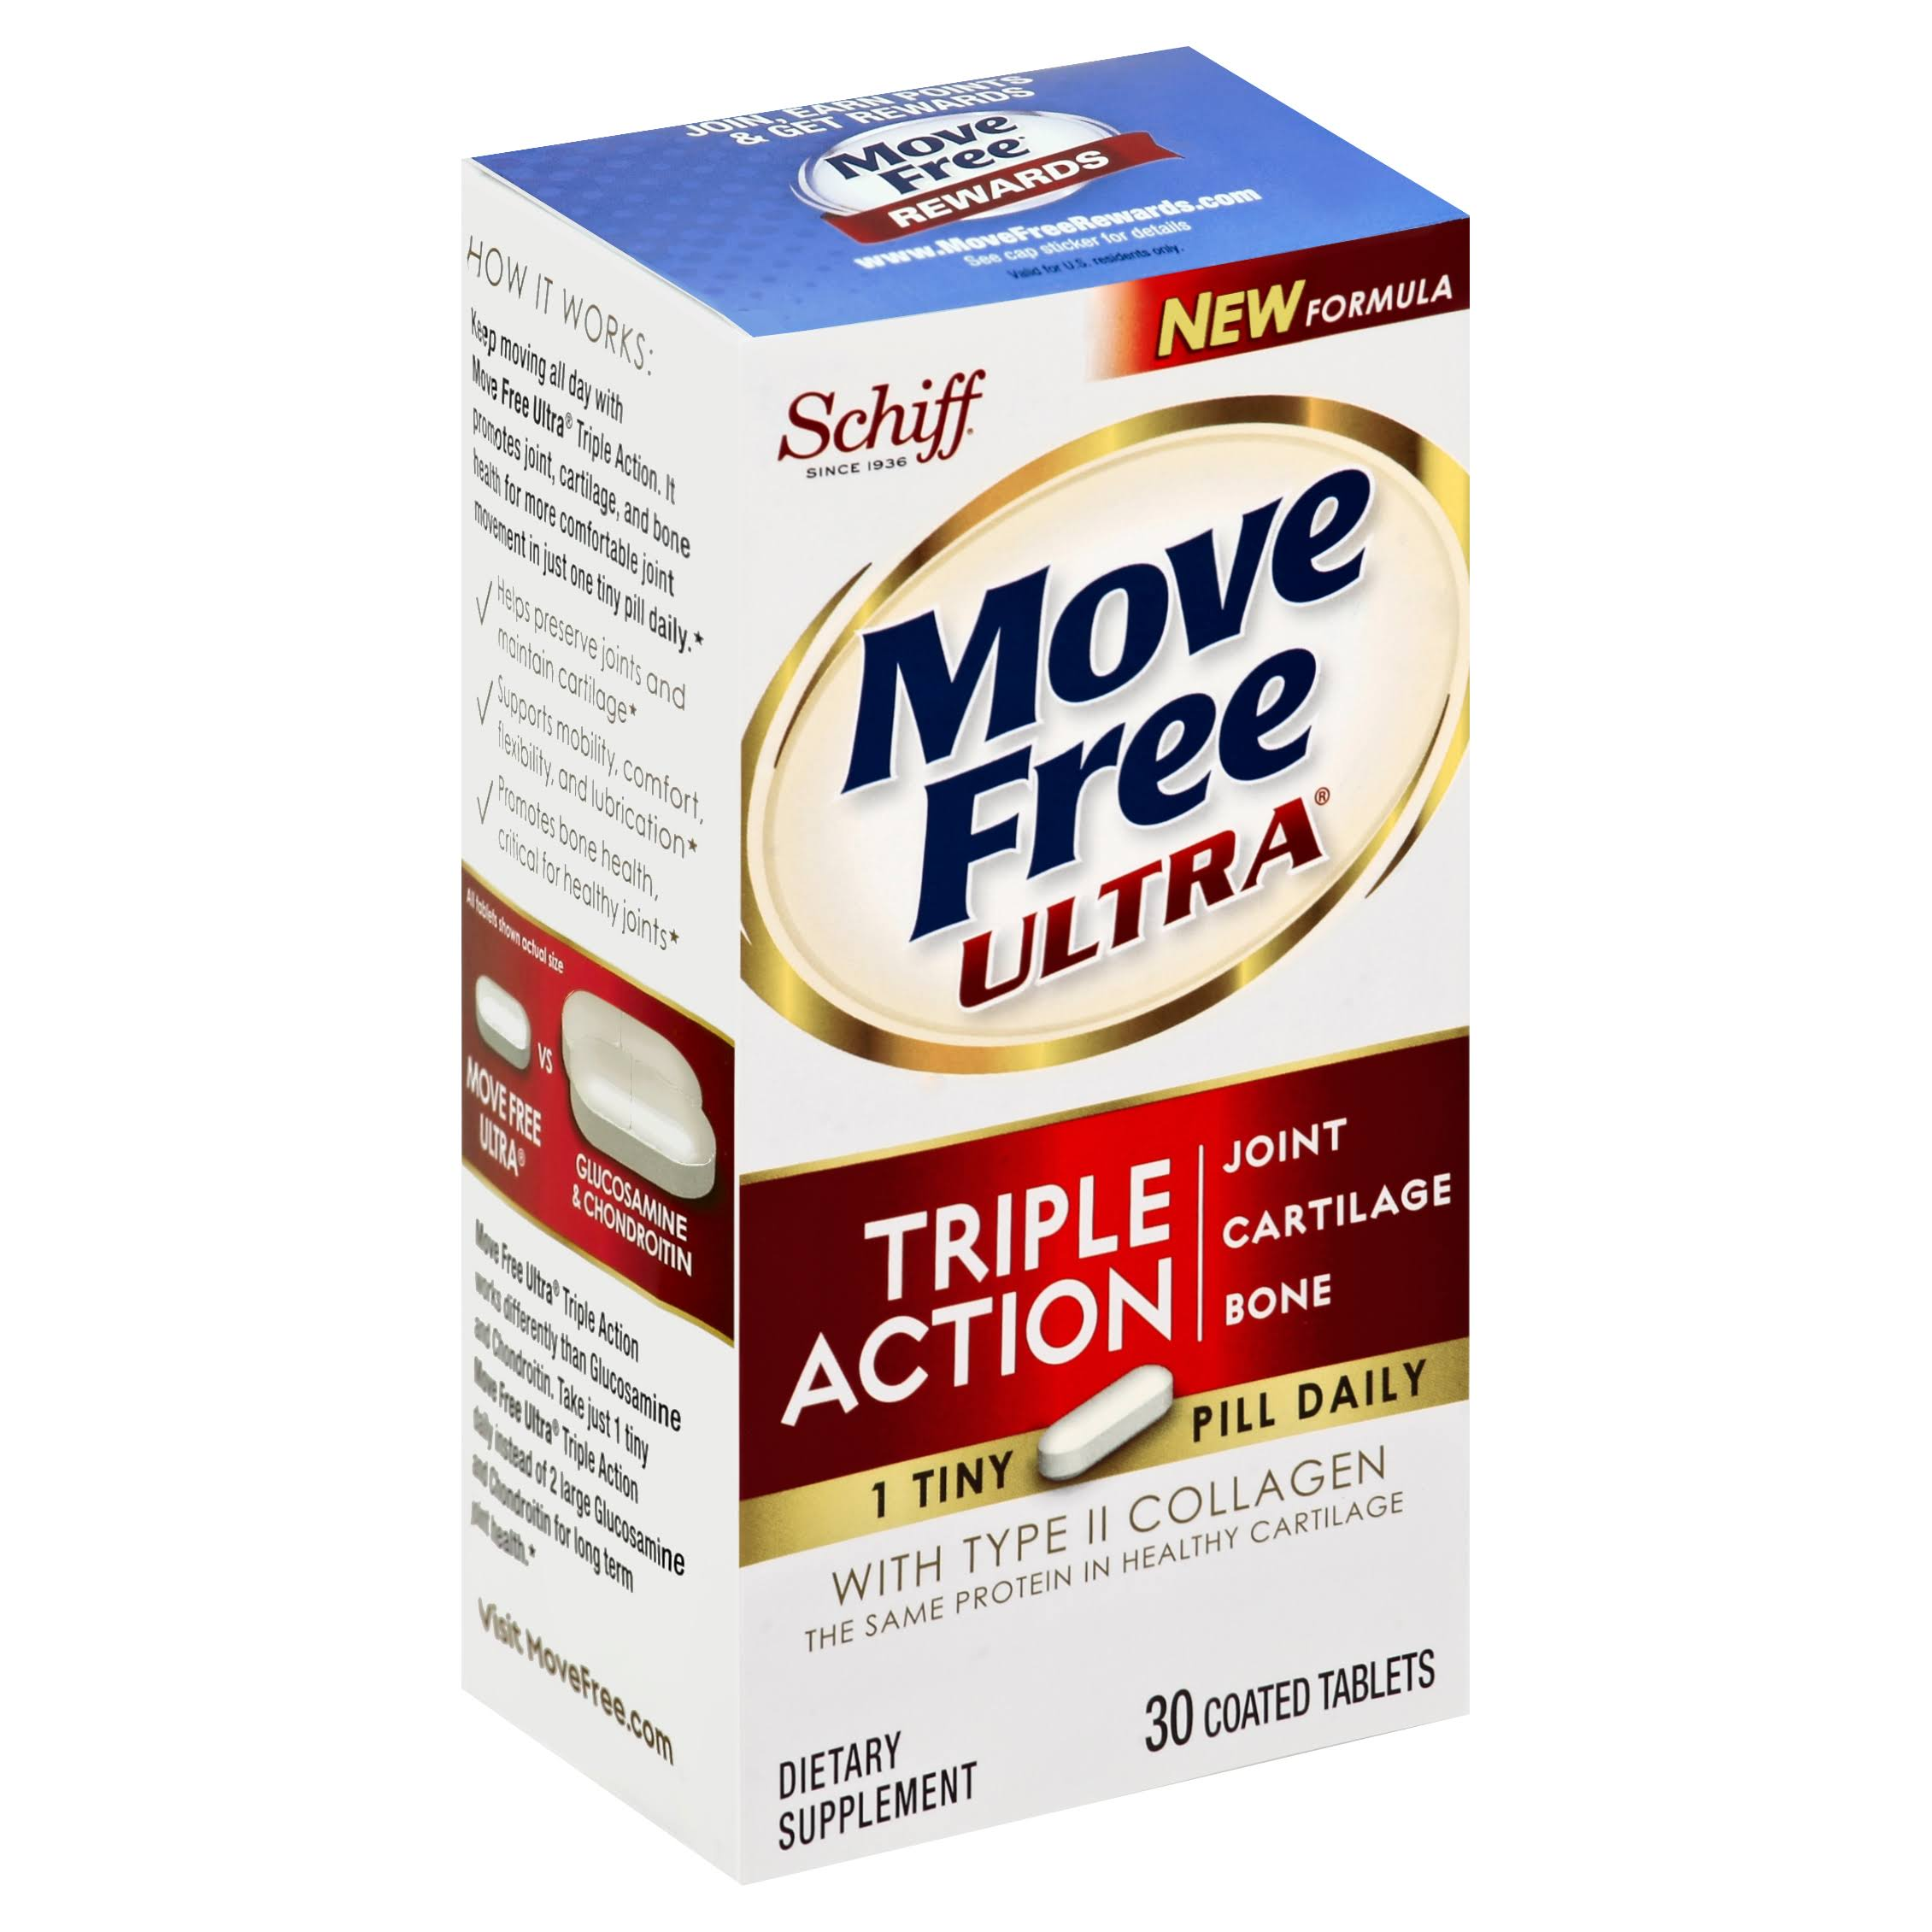 Schiff Move Free Ultra Dietary Supplement - 30 Tablets